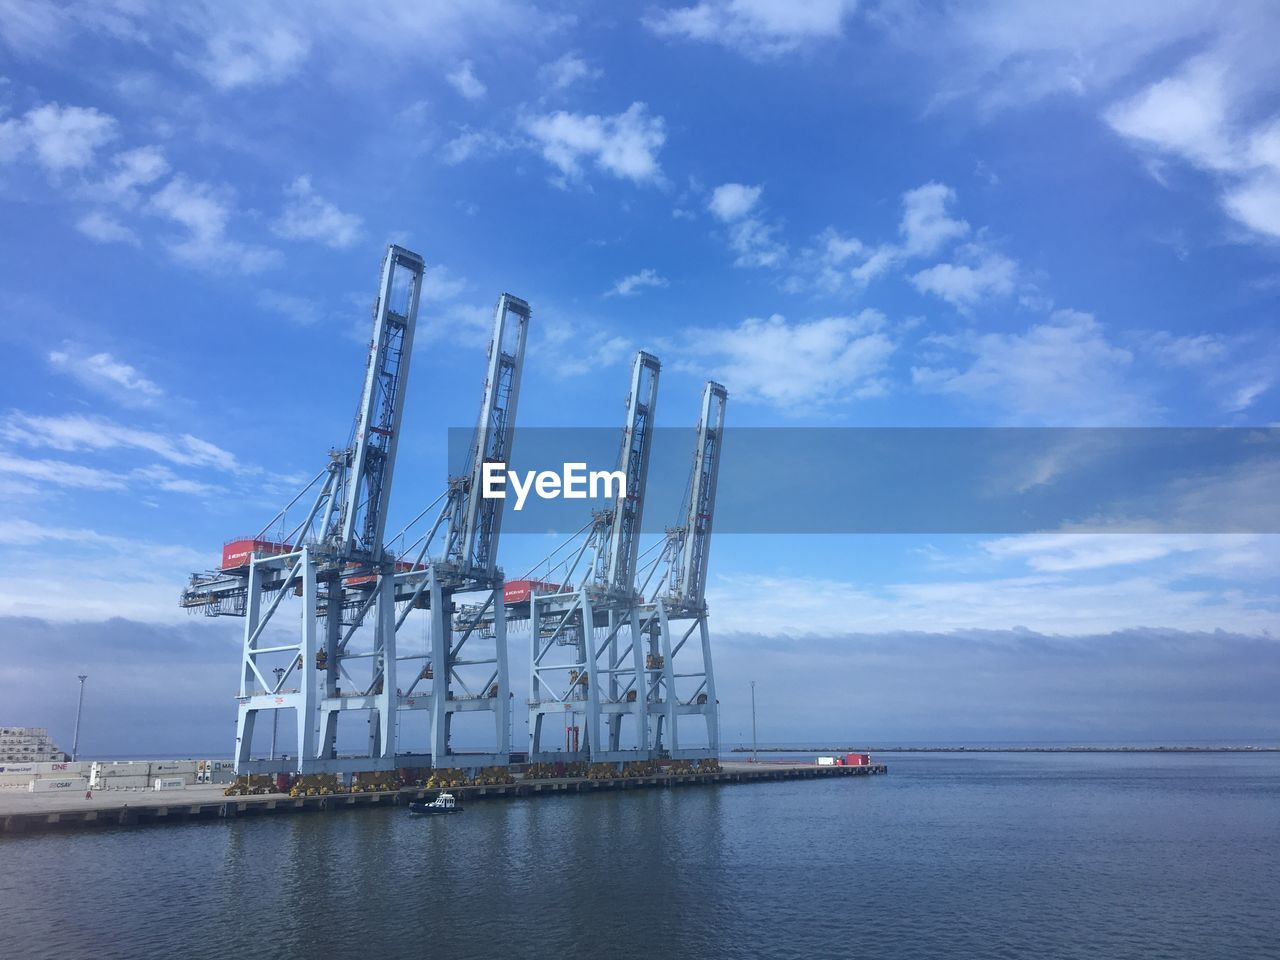 water, industry, cloud - sky, sky, transportation, sea, nautical vessel, business, shipping, freight transportation, waterfront, commercial dock, nature, harbor, crane - construction machinery, architecture, machinery, pier, day, no people, outdoors, construction equipment